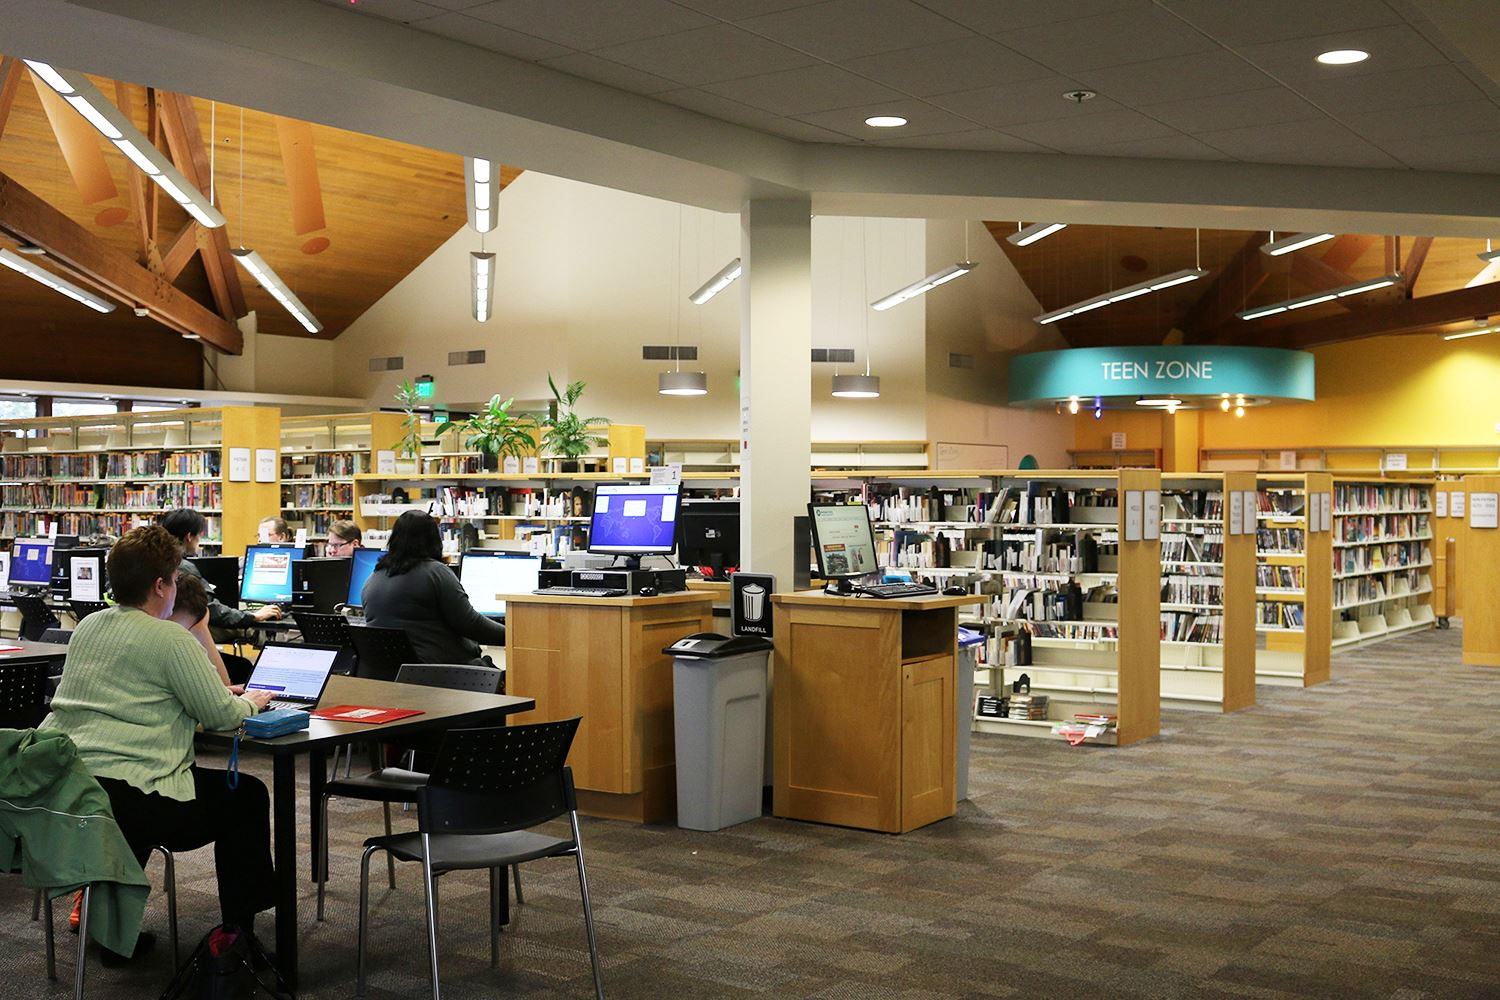 Photo of the inside of a library building with people using computers.